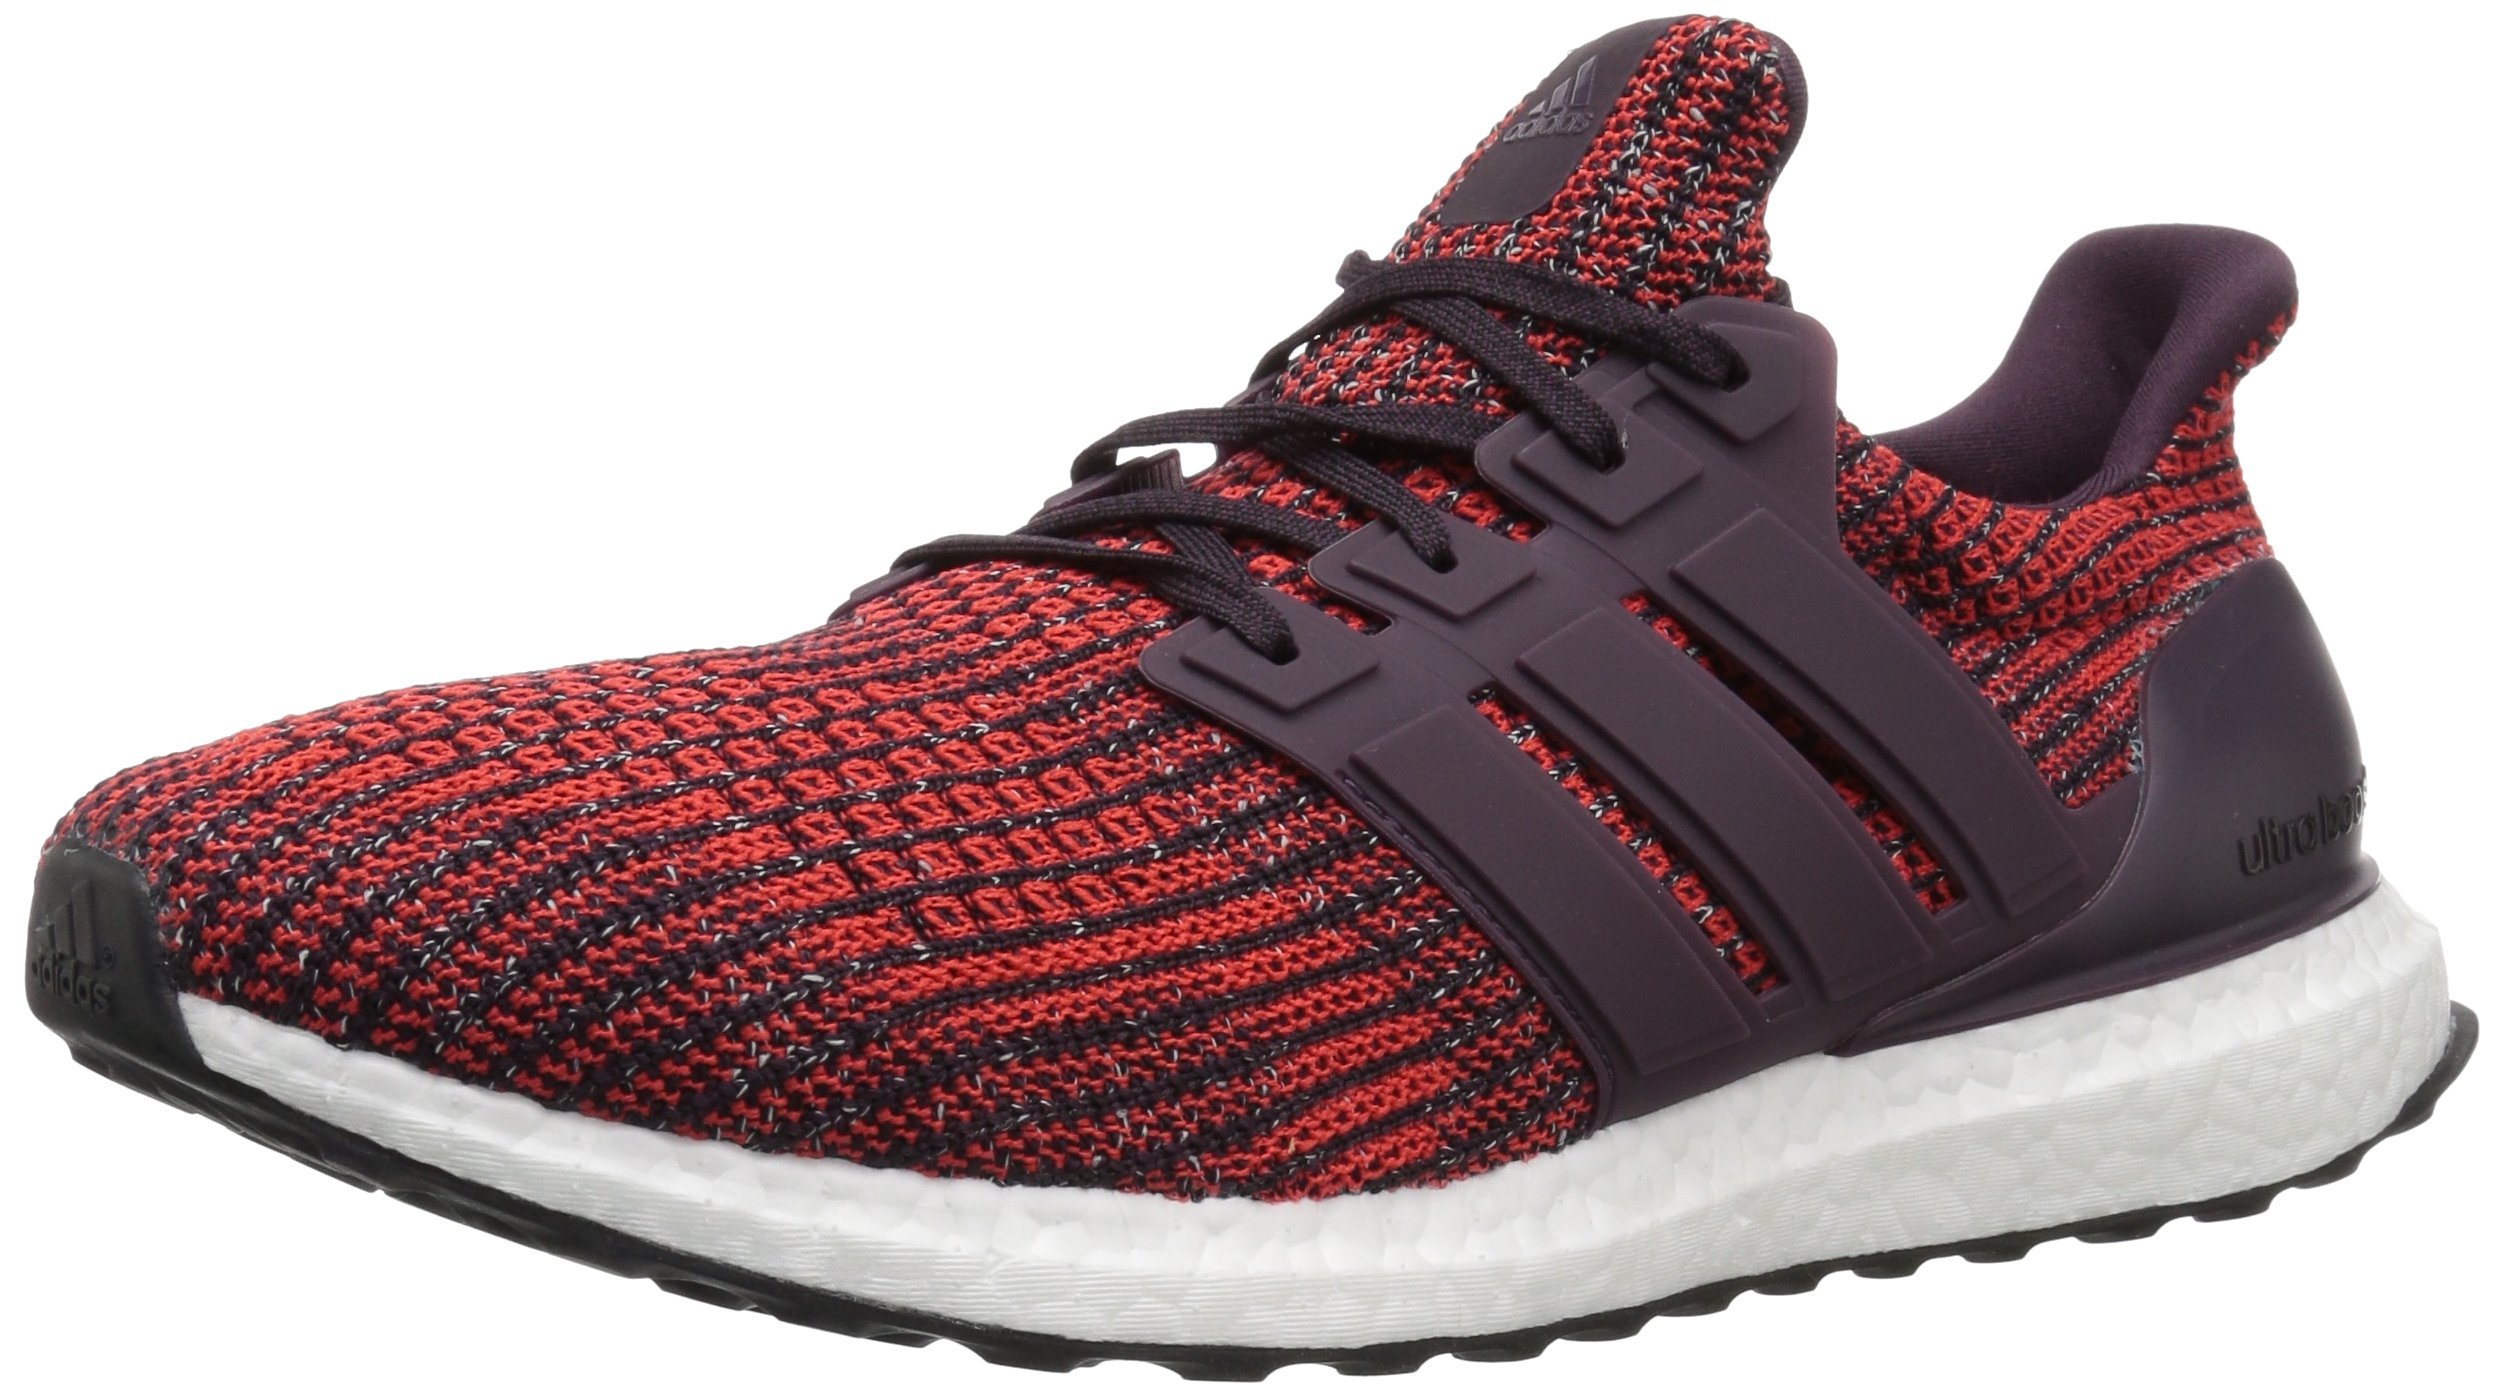 3f908fefb Galleon - Adidas Men s Ultraboost Road Running Shoe